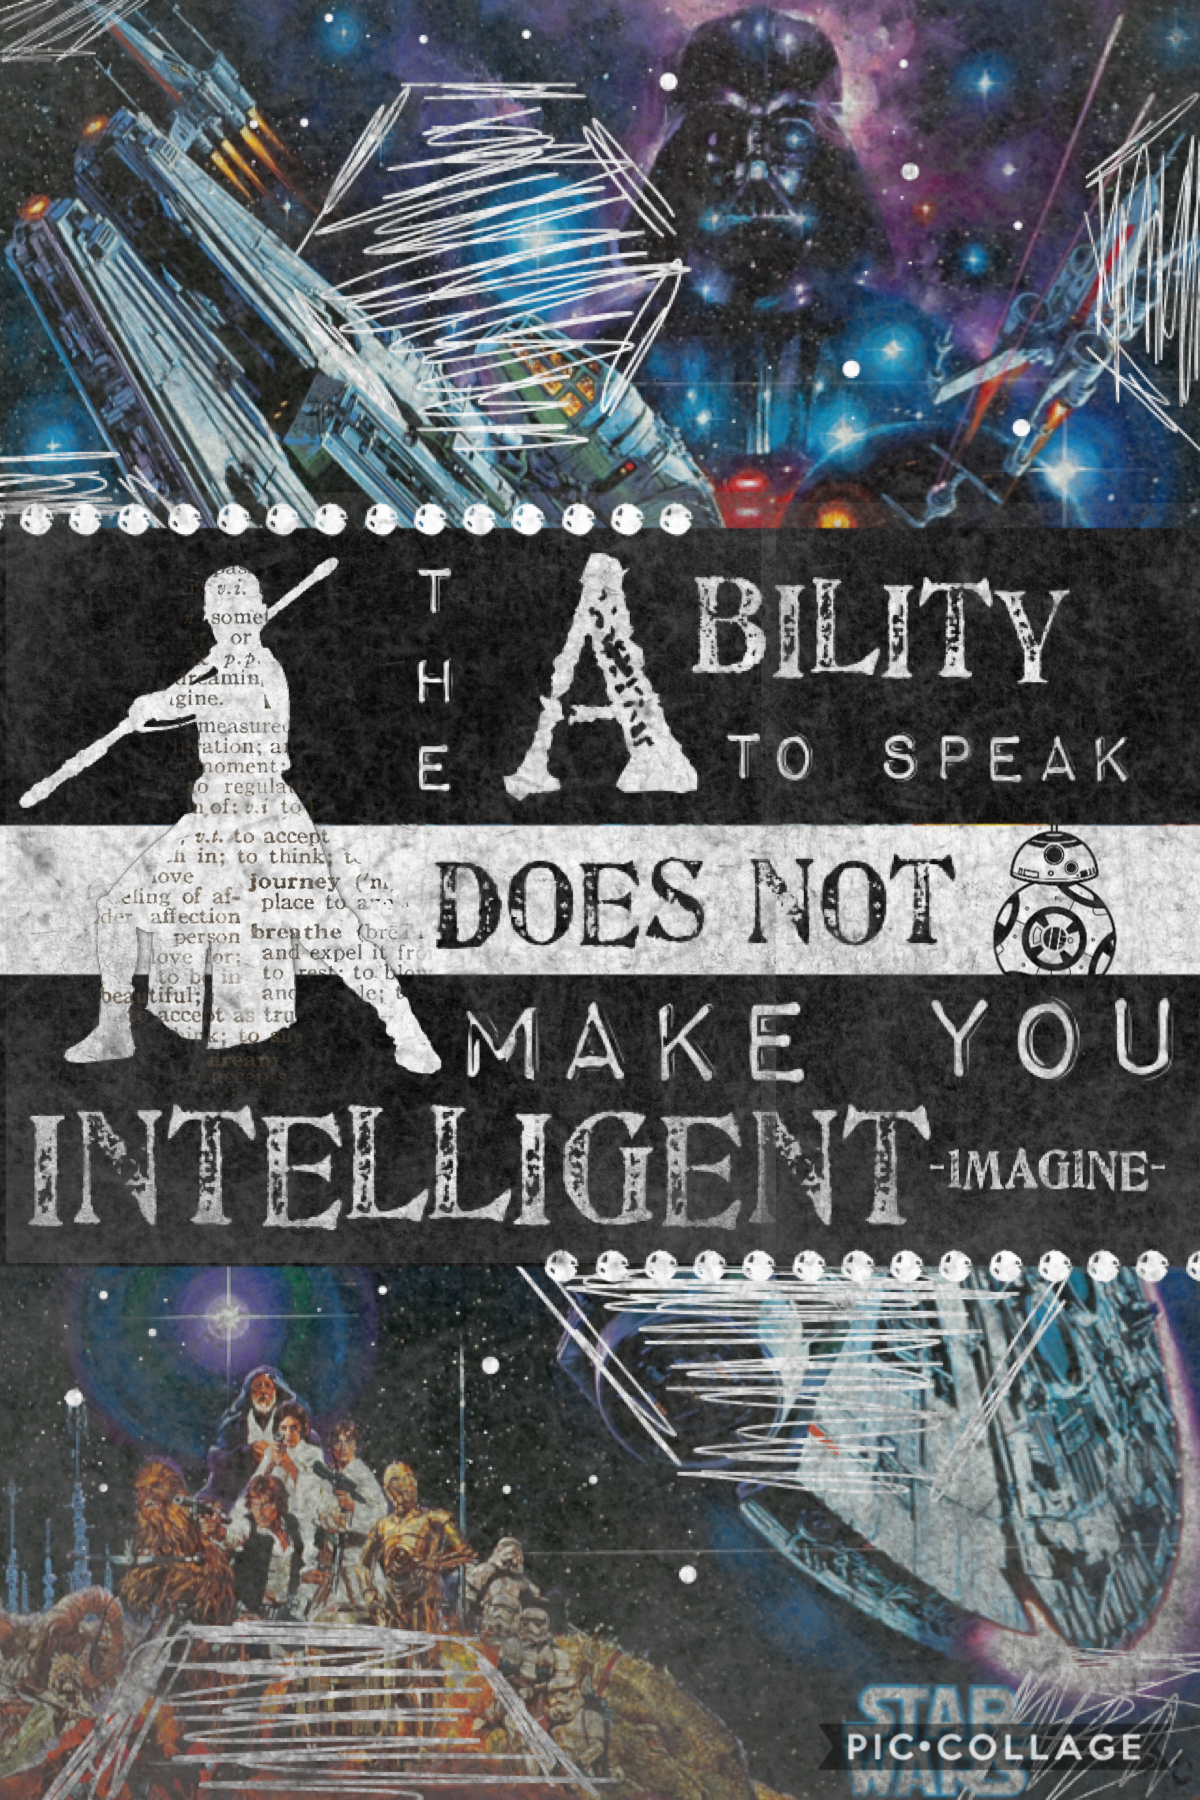 Hi I am not a huge fan of Star Wars (sorry) but I liked this quote How are you all doing ?